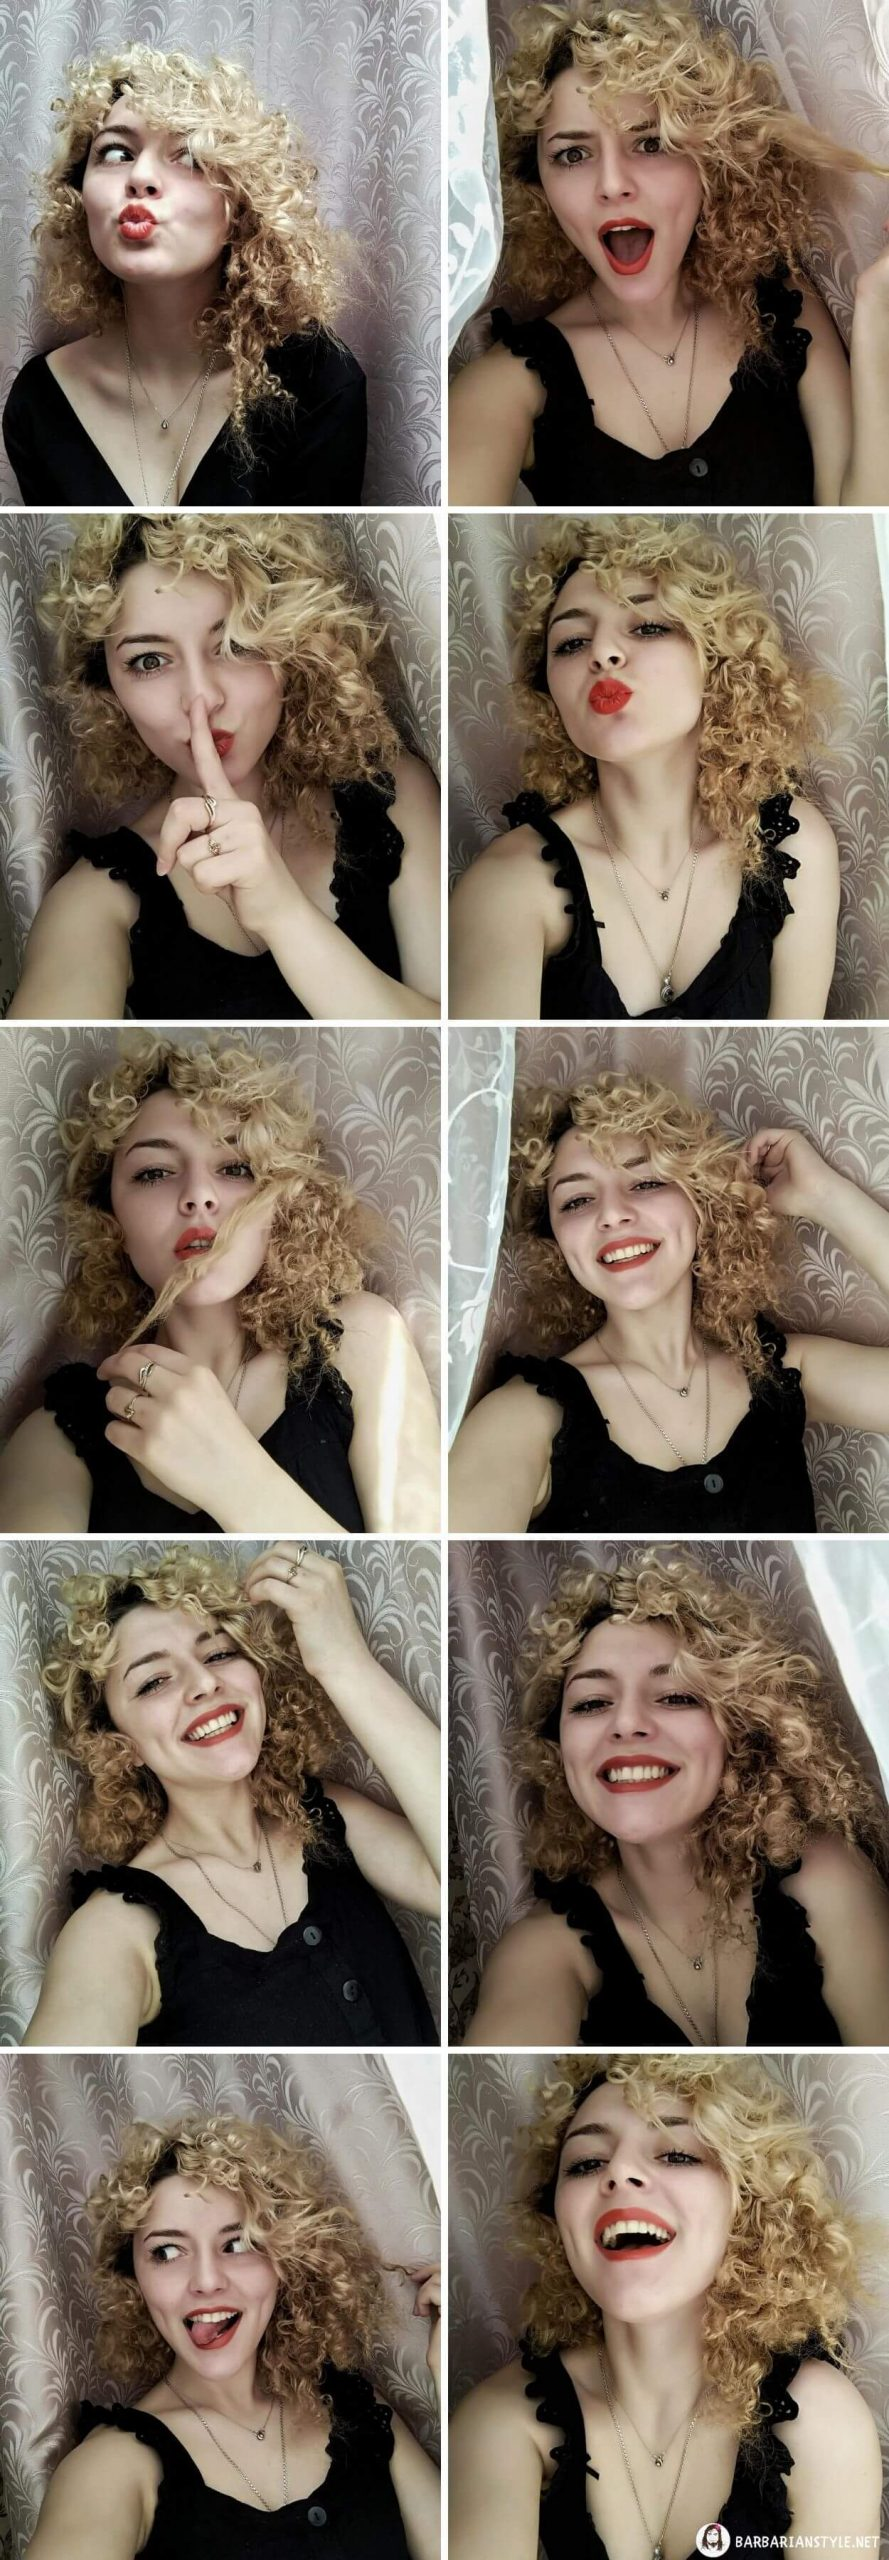 Medium-Length Hairstyle for Girls with Curls